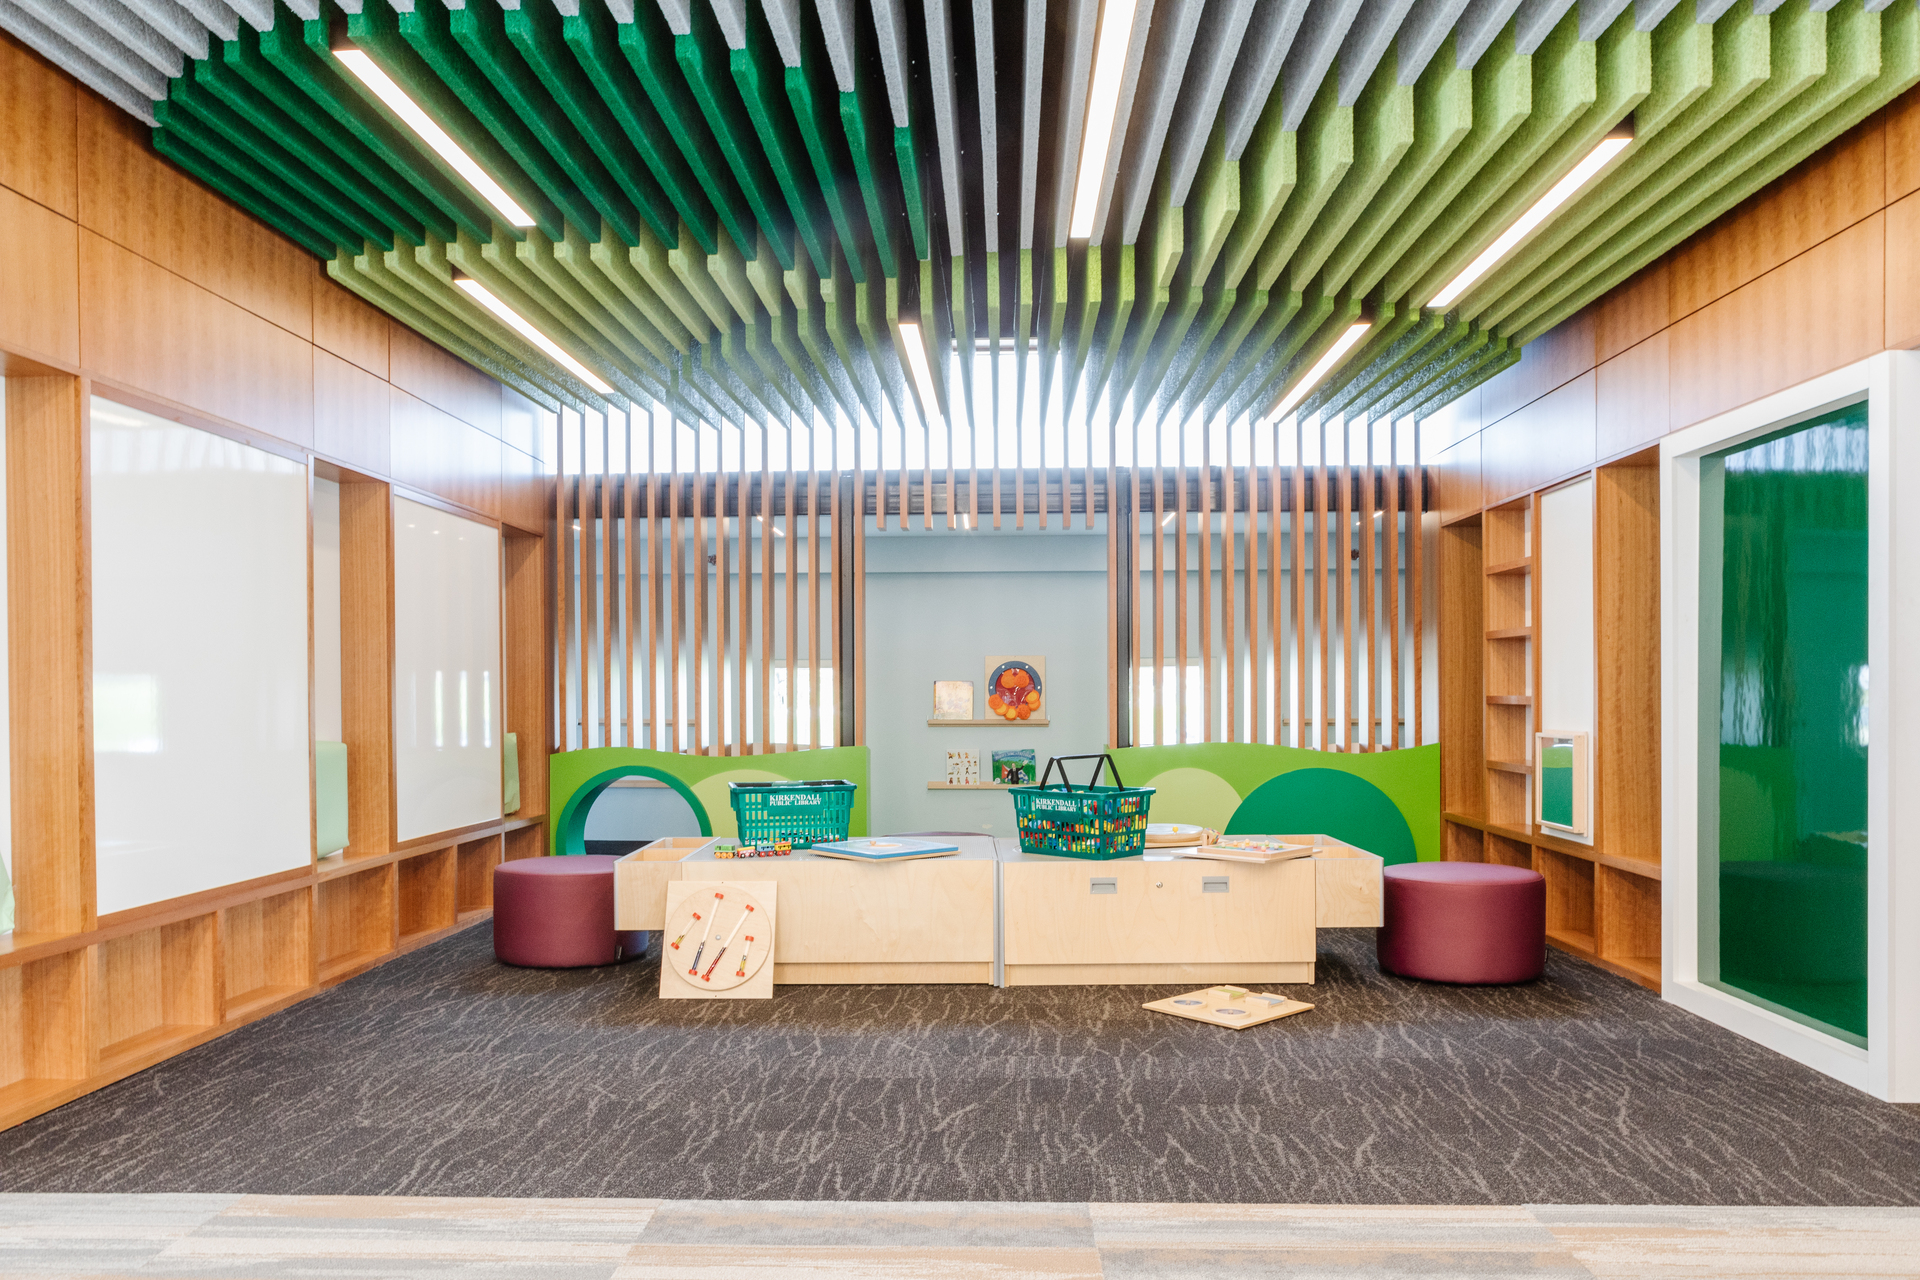 Library Children's Activity Area Whiteboards Linear Hanging Lights and Acoustic Ceiling Panels Stahl Construction General Contractor